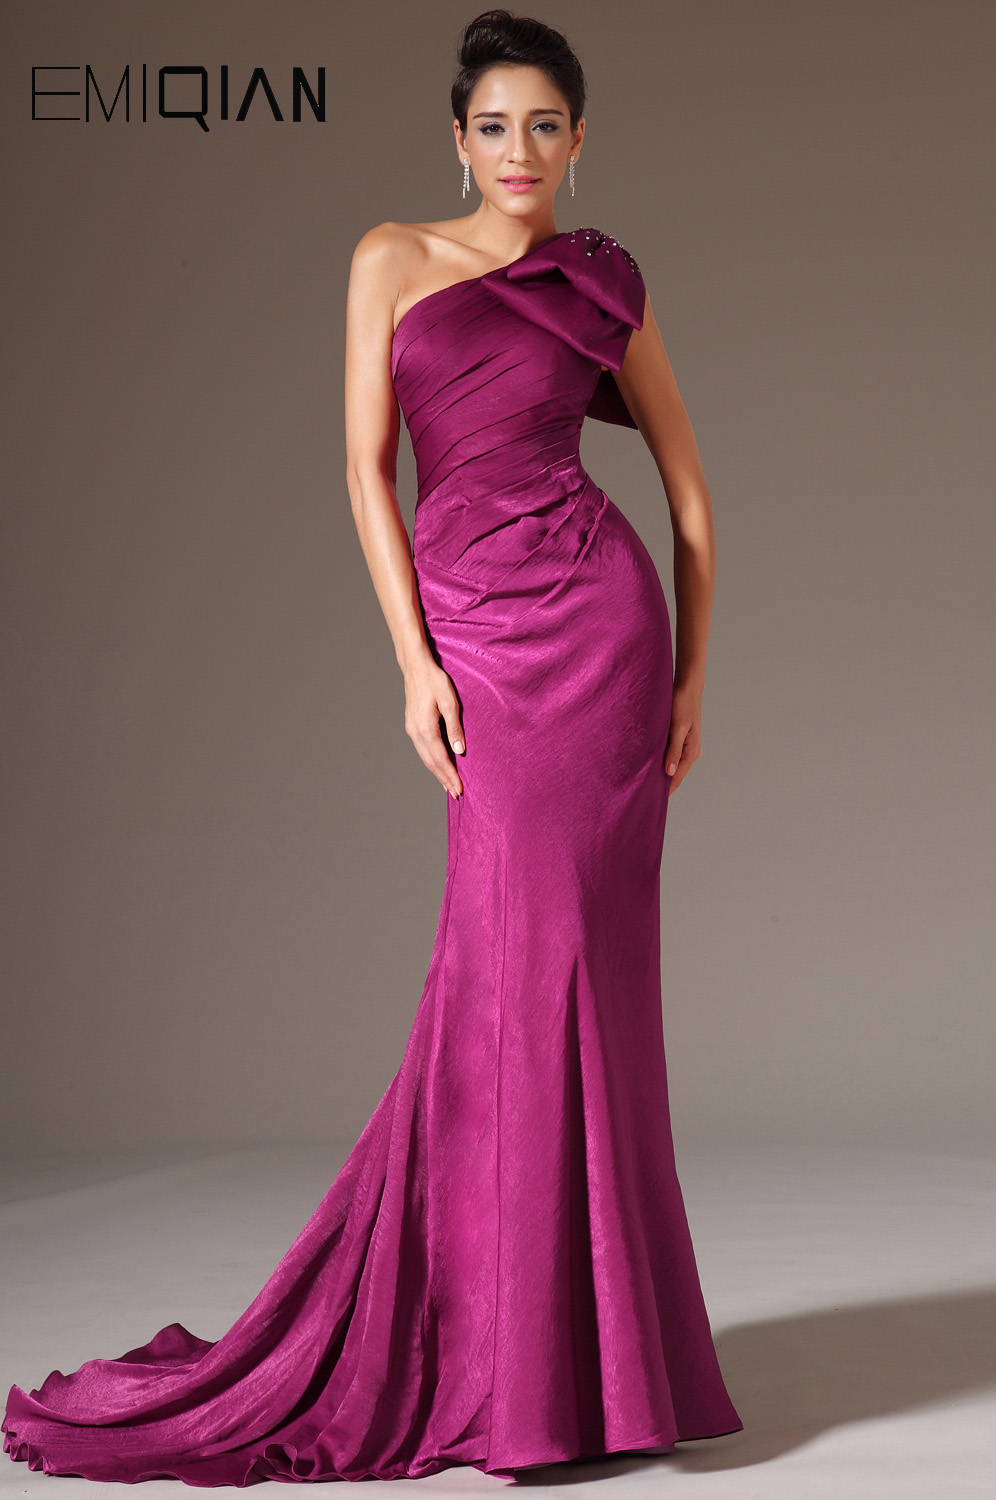 New Stylish One Shoulder Evening Gown,Plum Mermaid Evening Dresses With Shoulder Bow